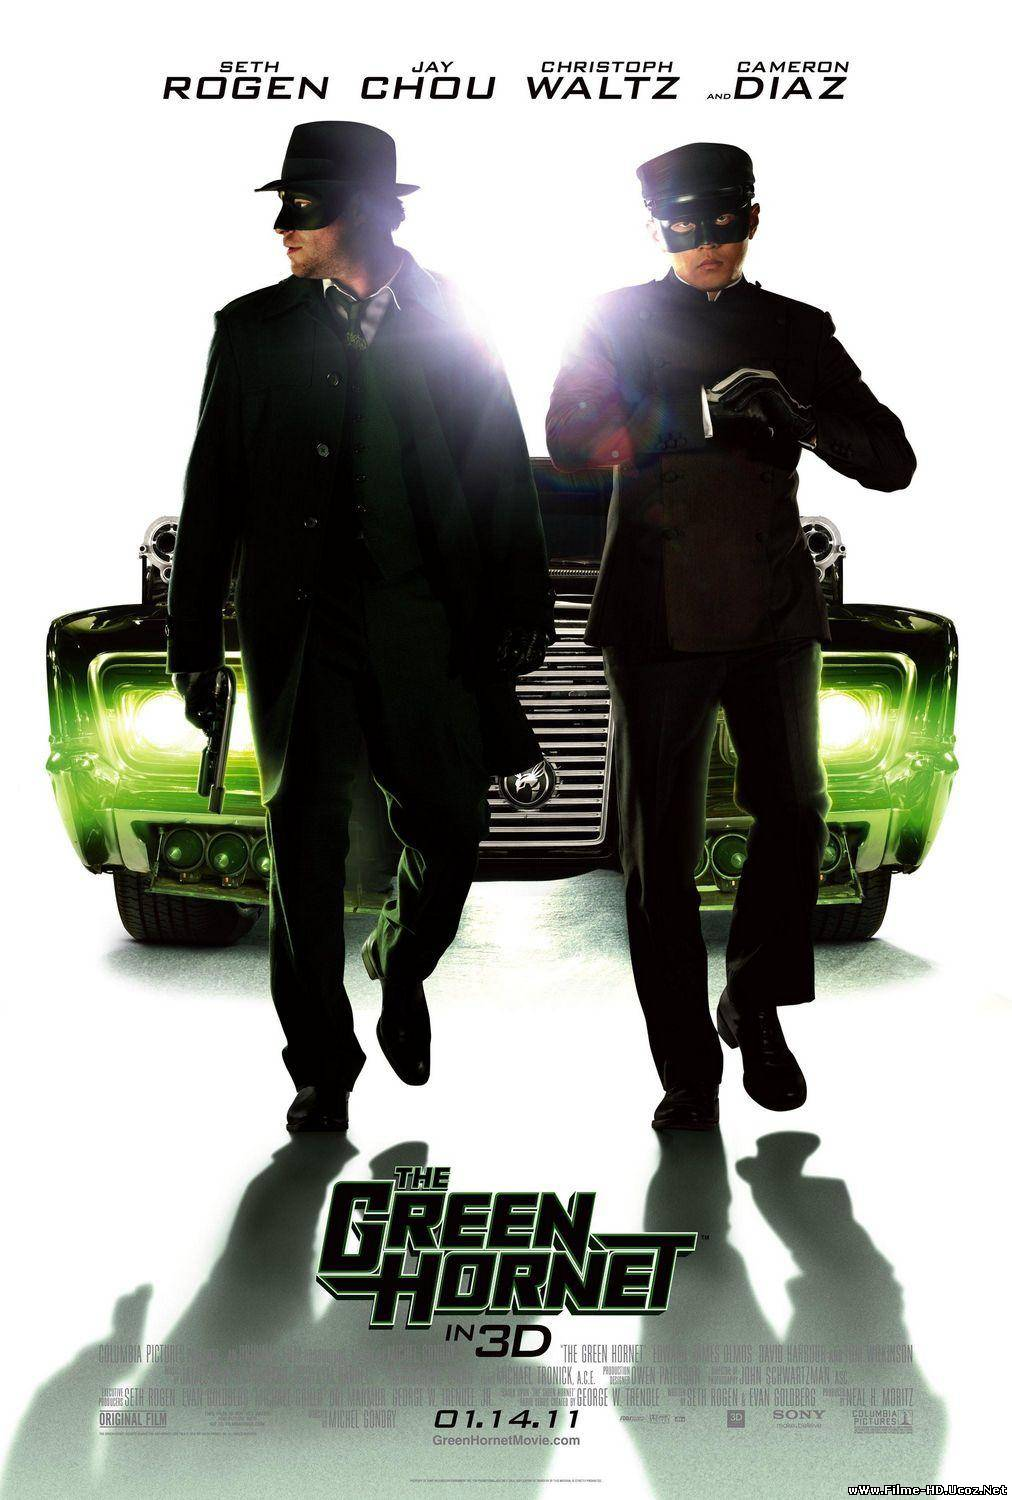 Viespea verde - The Green Hornet (2011)